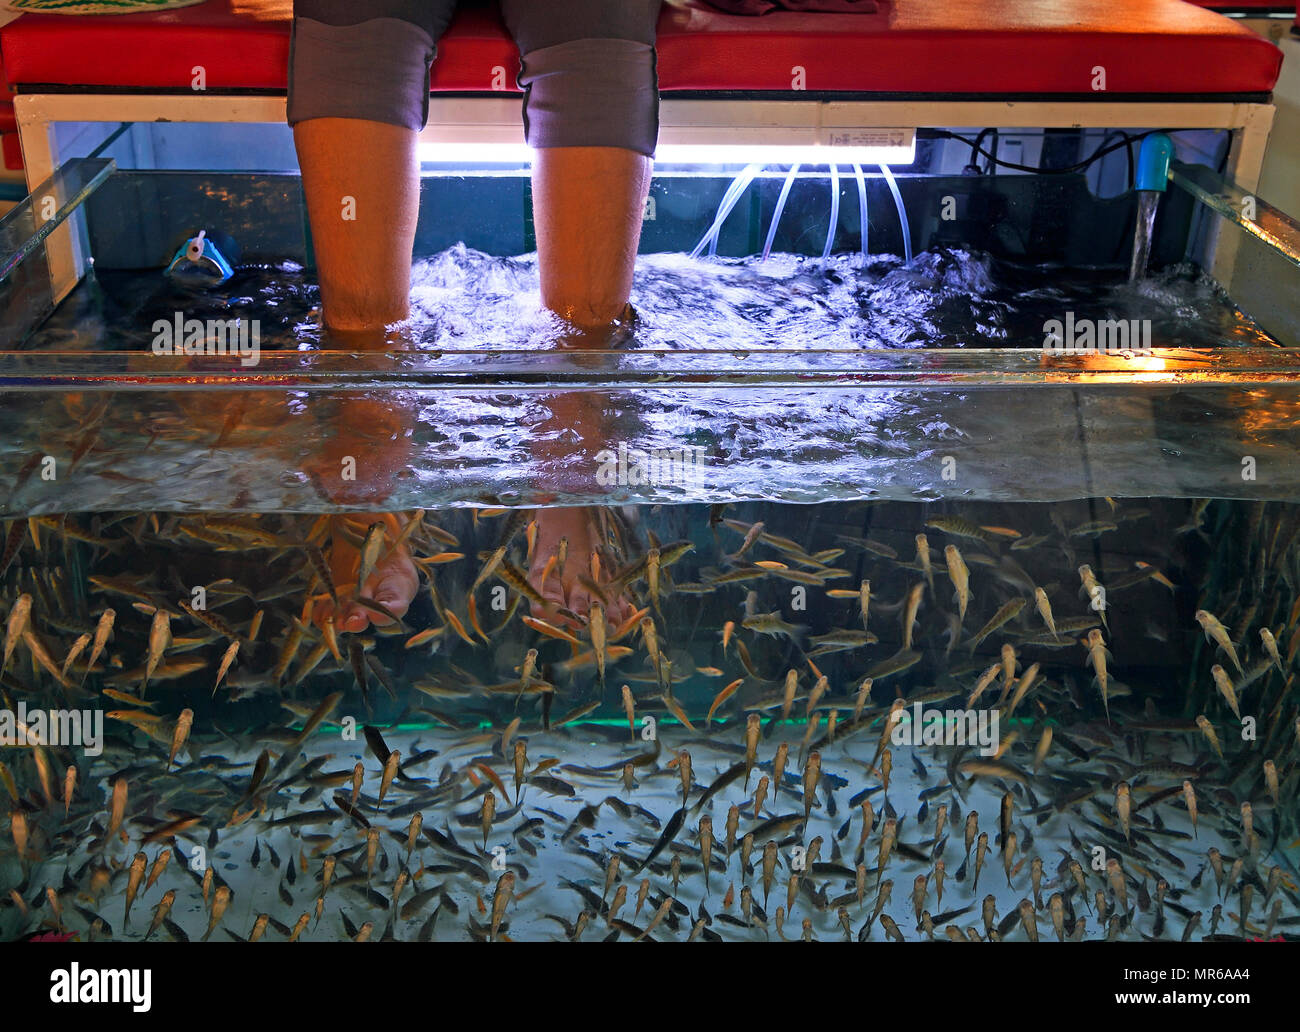 Feet hanging in aquarium with fish, to remove dead skin from feet, Phuket, Thailand - Stock Image